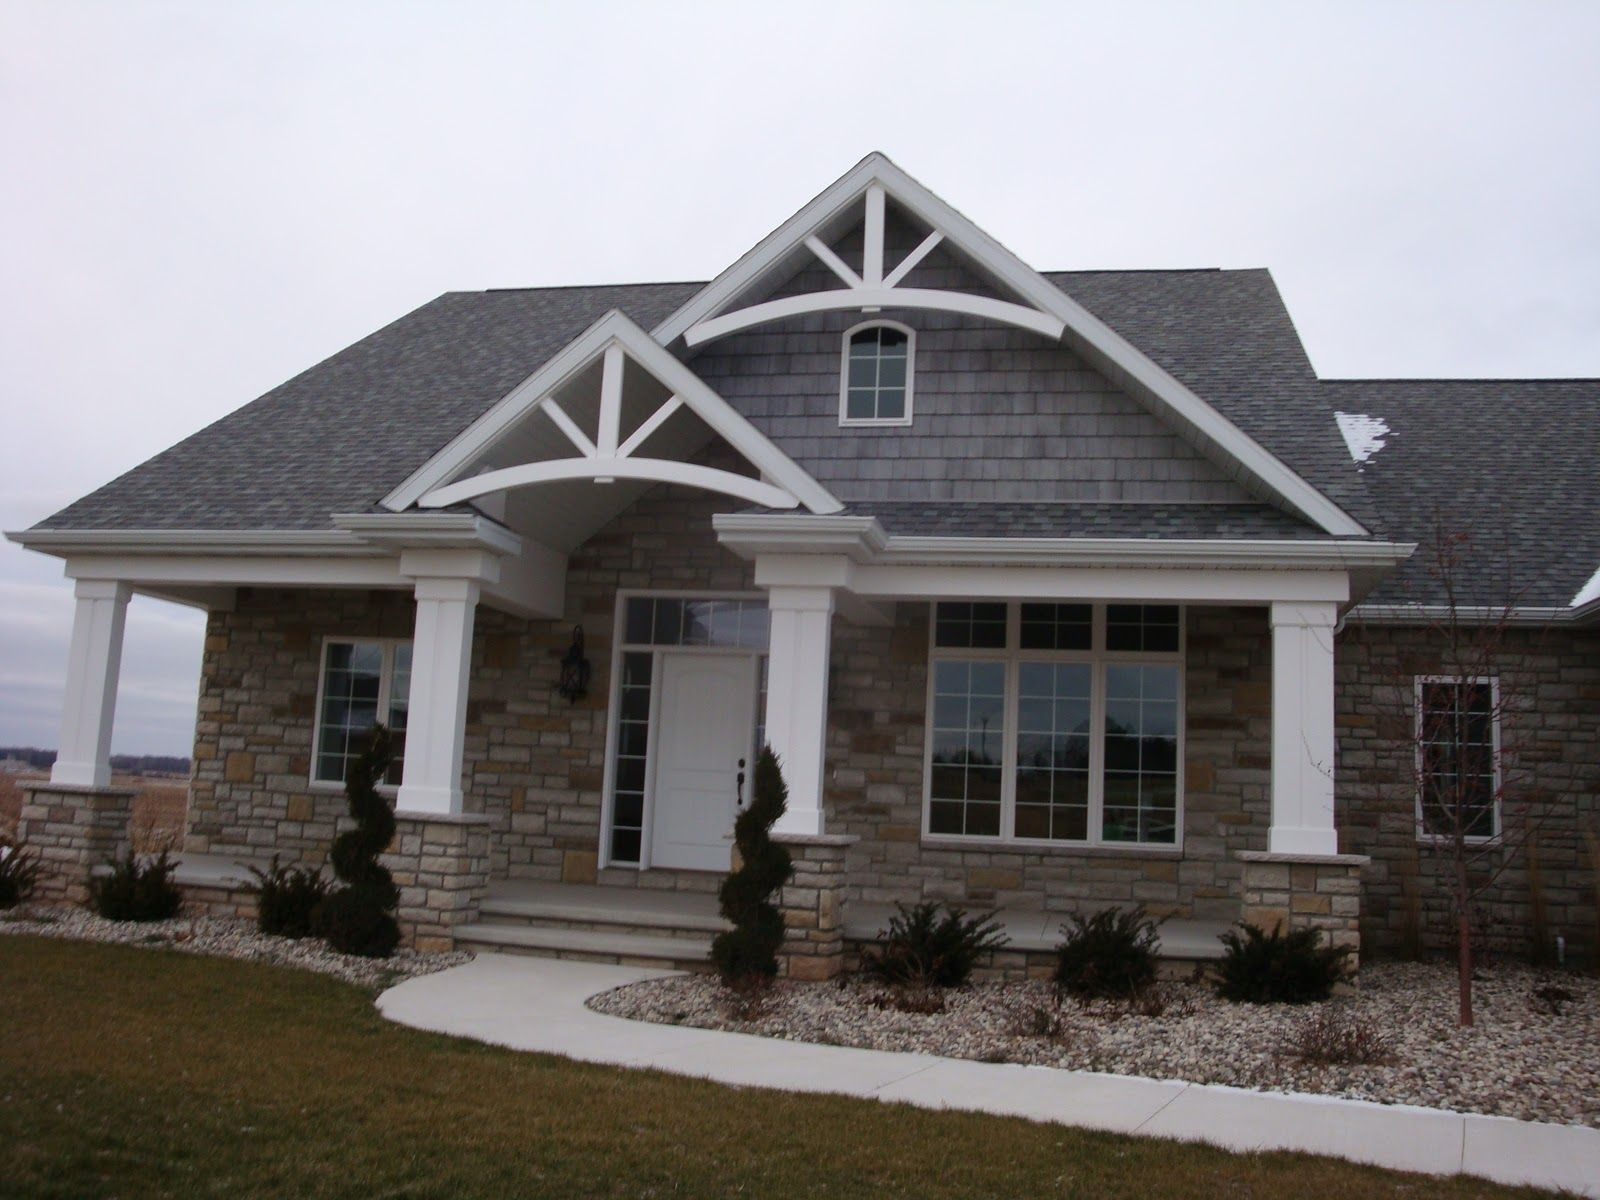 Brick And Stone Exterior Combinations Vinyl Siding And Stone Combination Stucco Option A Nice